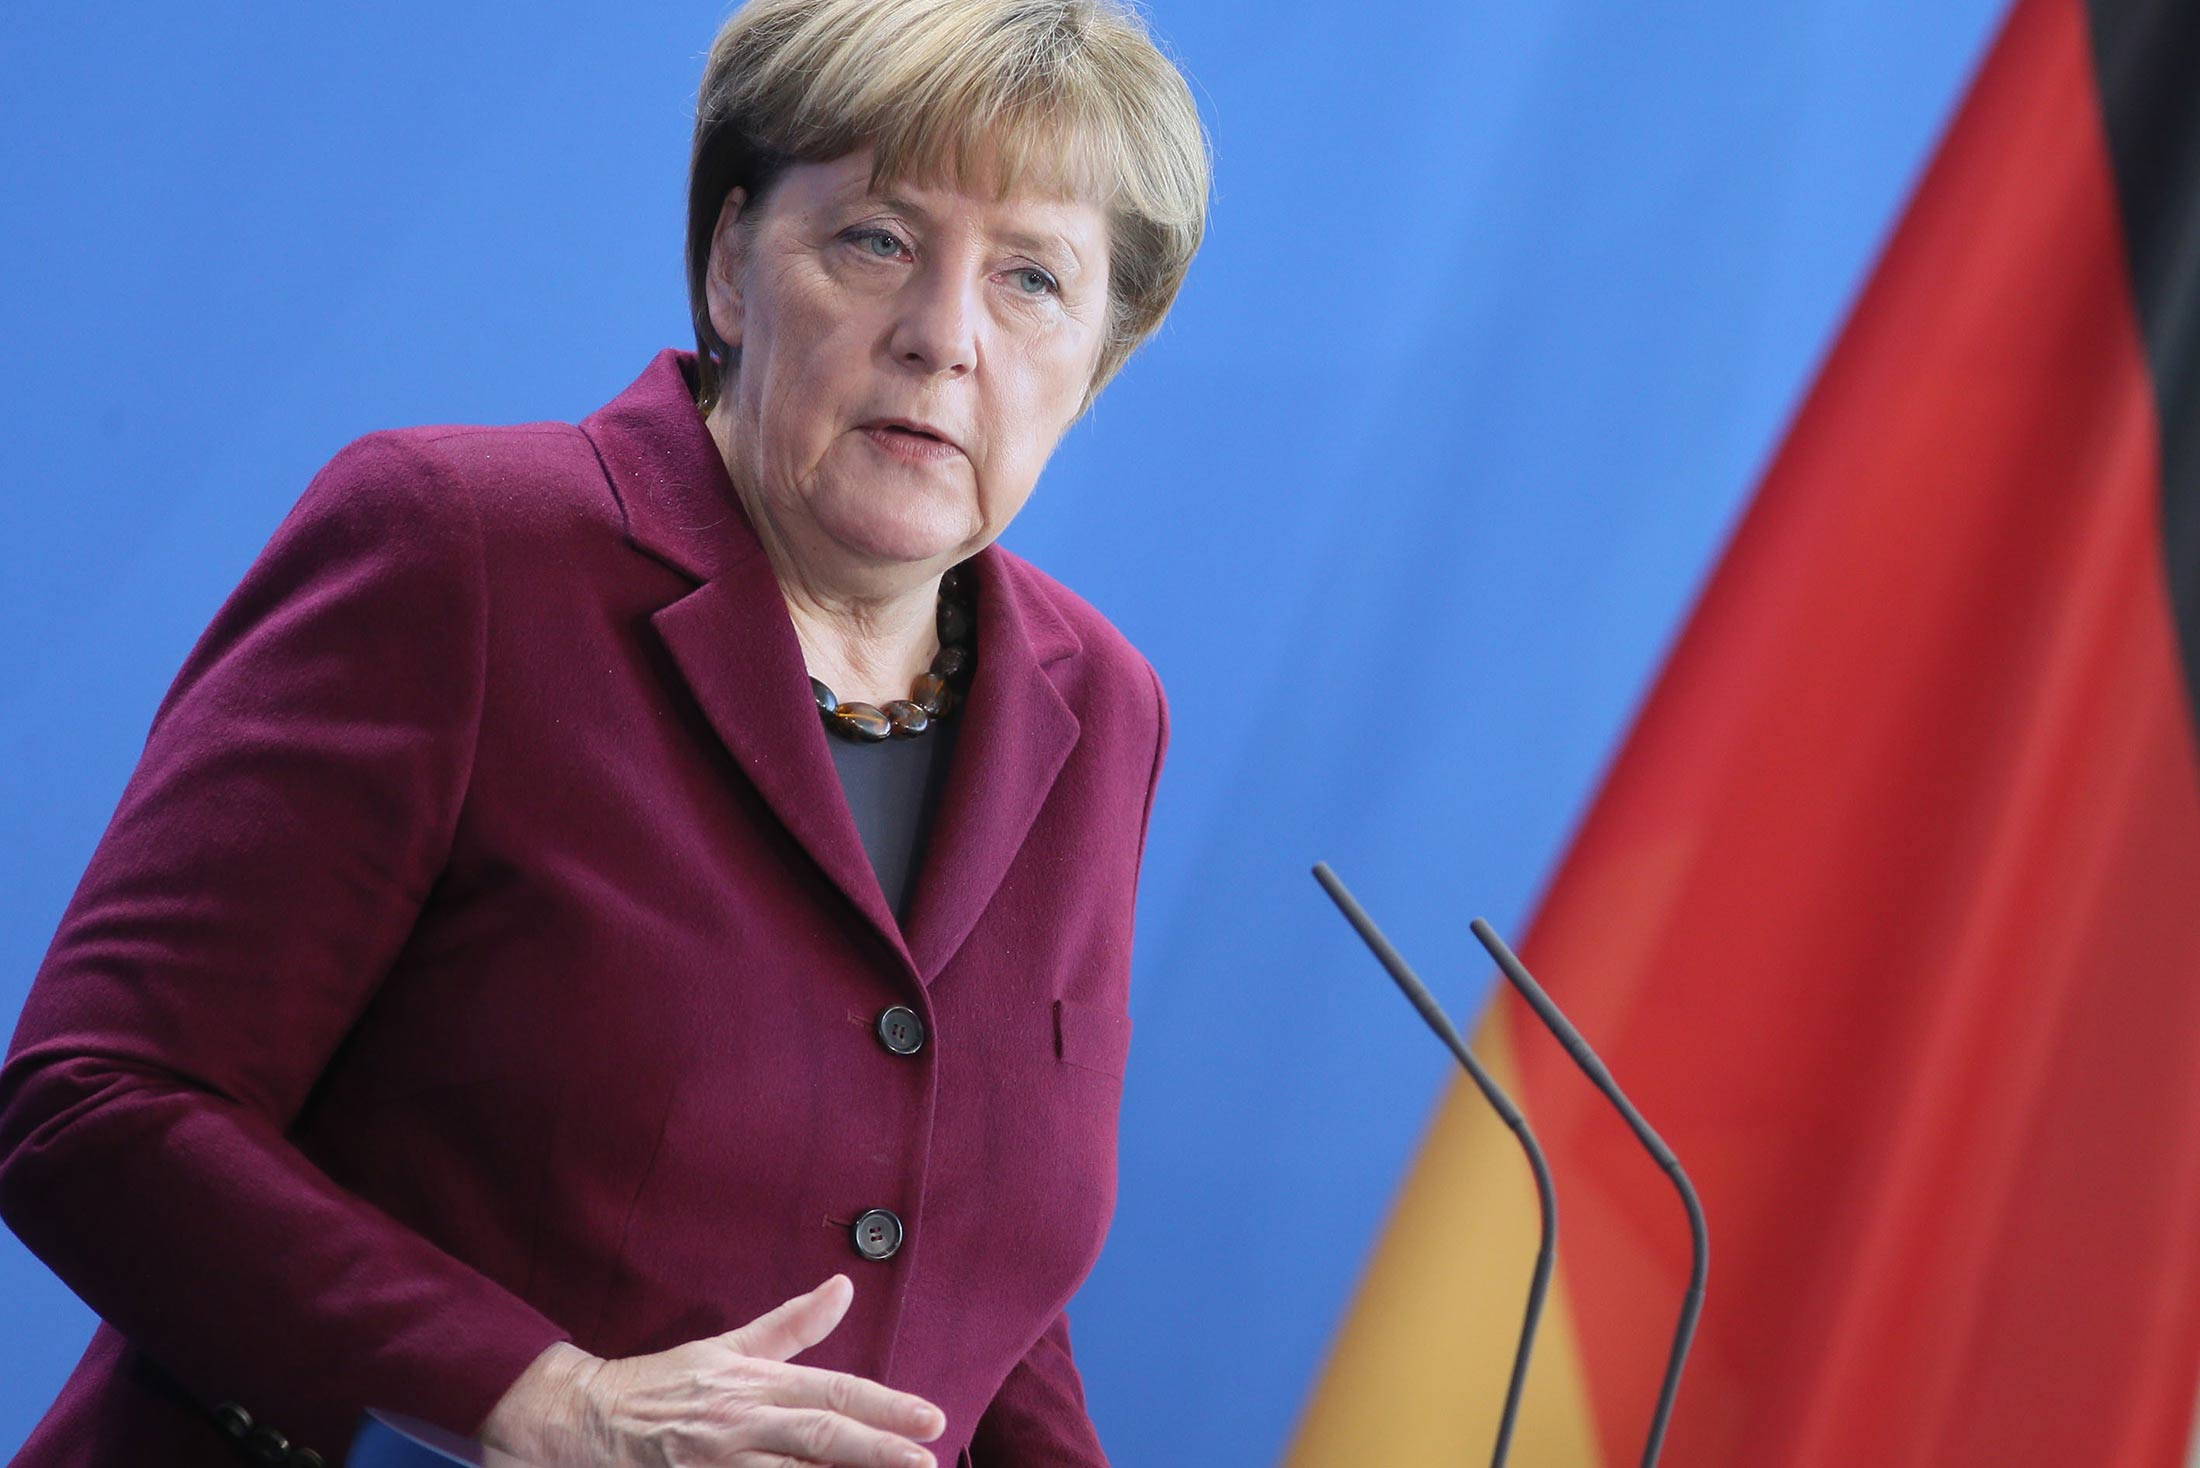 Germany's Election Is Full of Pitfalls for Angela Merkel